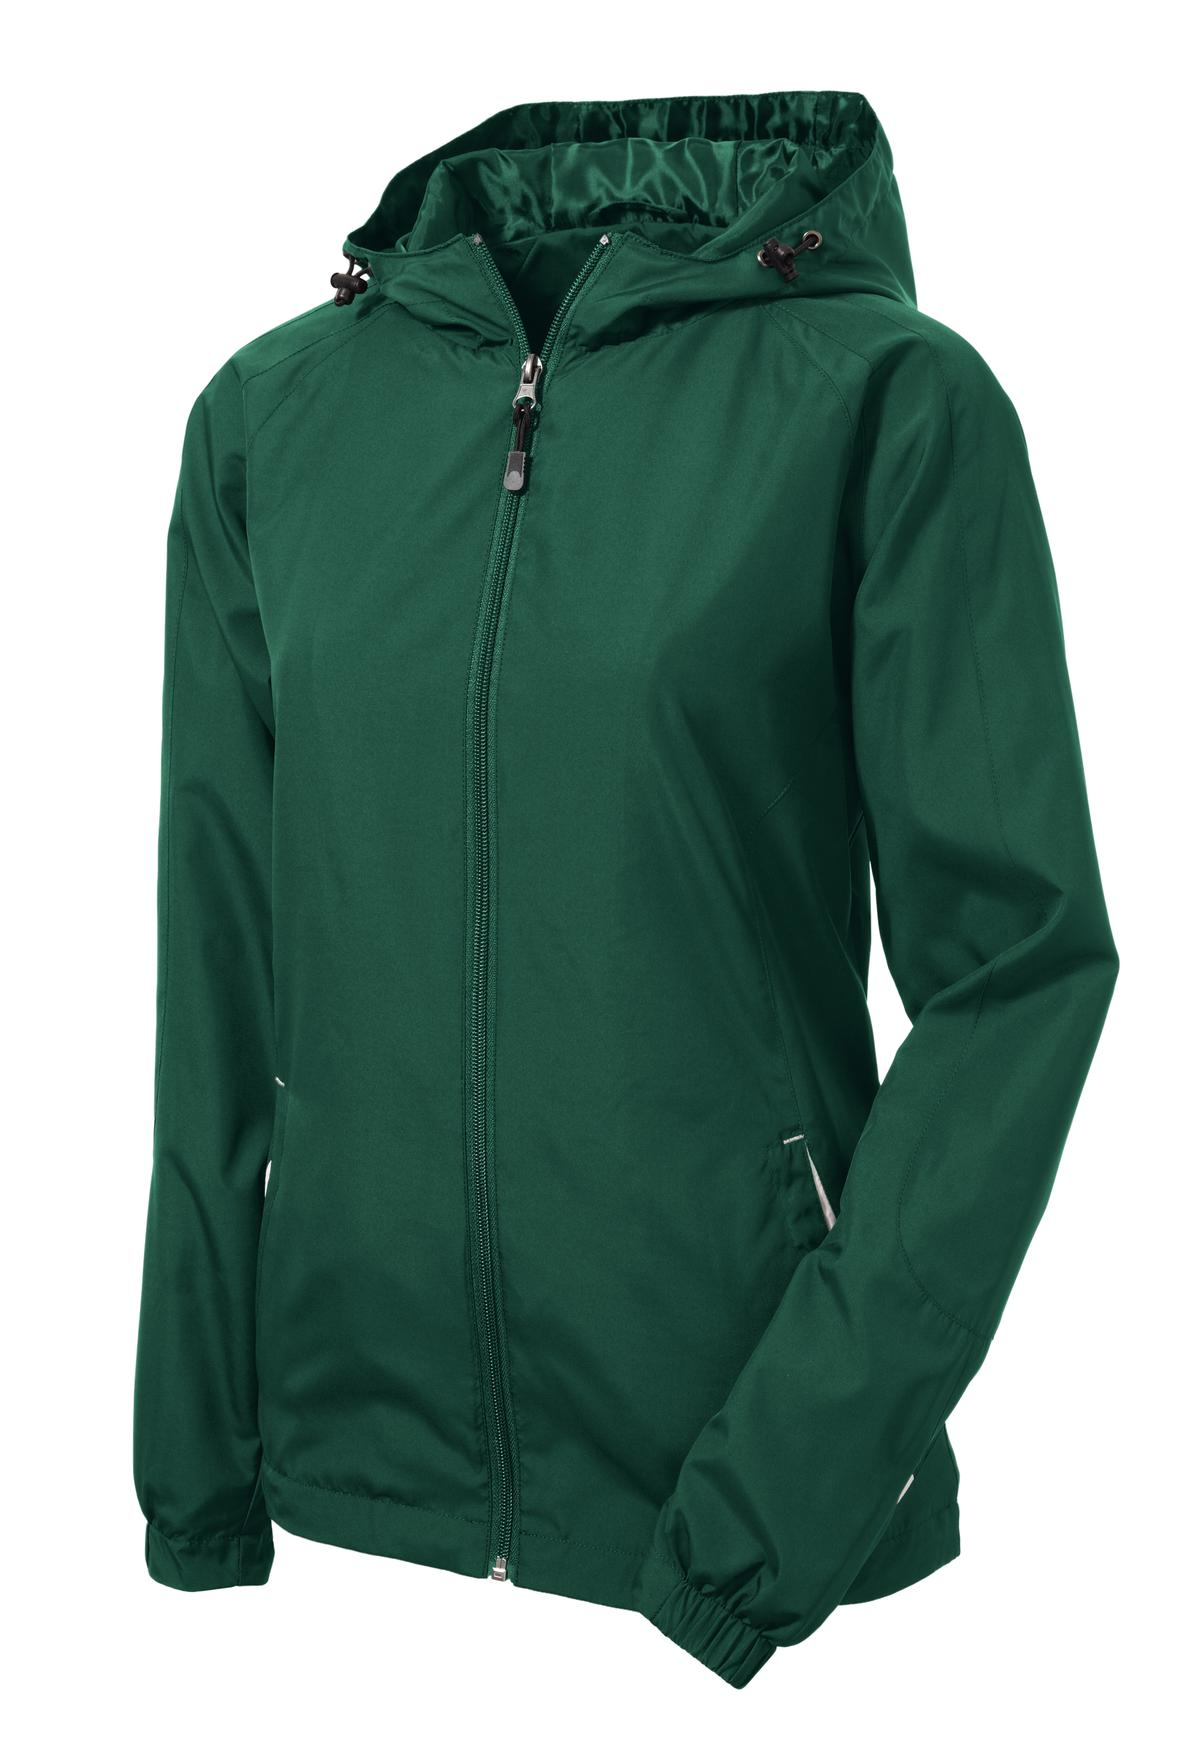 Mafoose Women's Colorblock Hooded Raglan Jacket Forest Green/White-Front